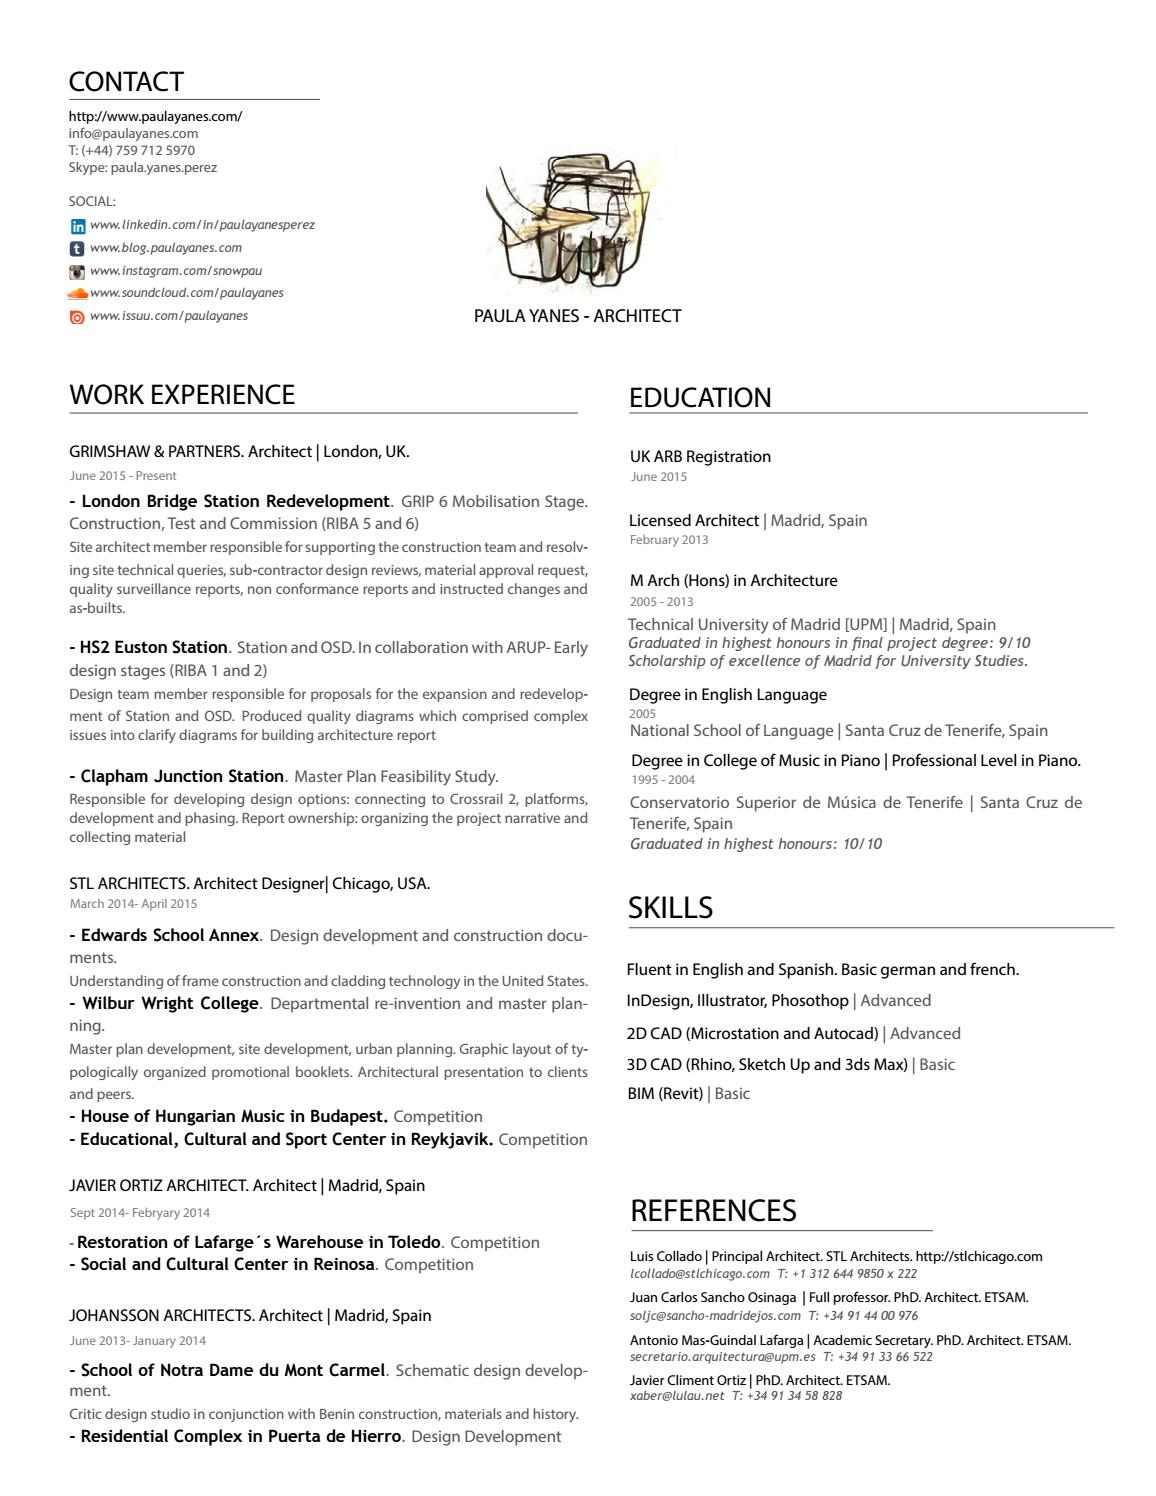 Cv Resume Paulayanes Architect By Paula Yanes Issuu